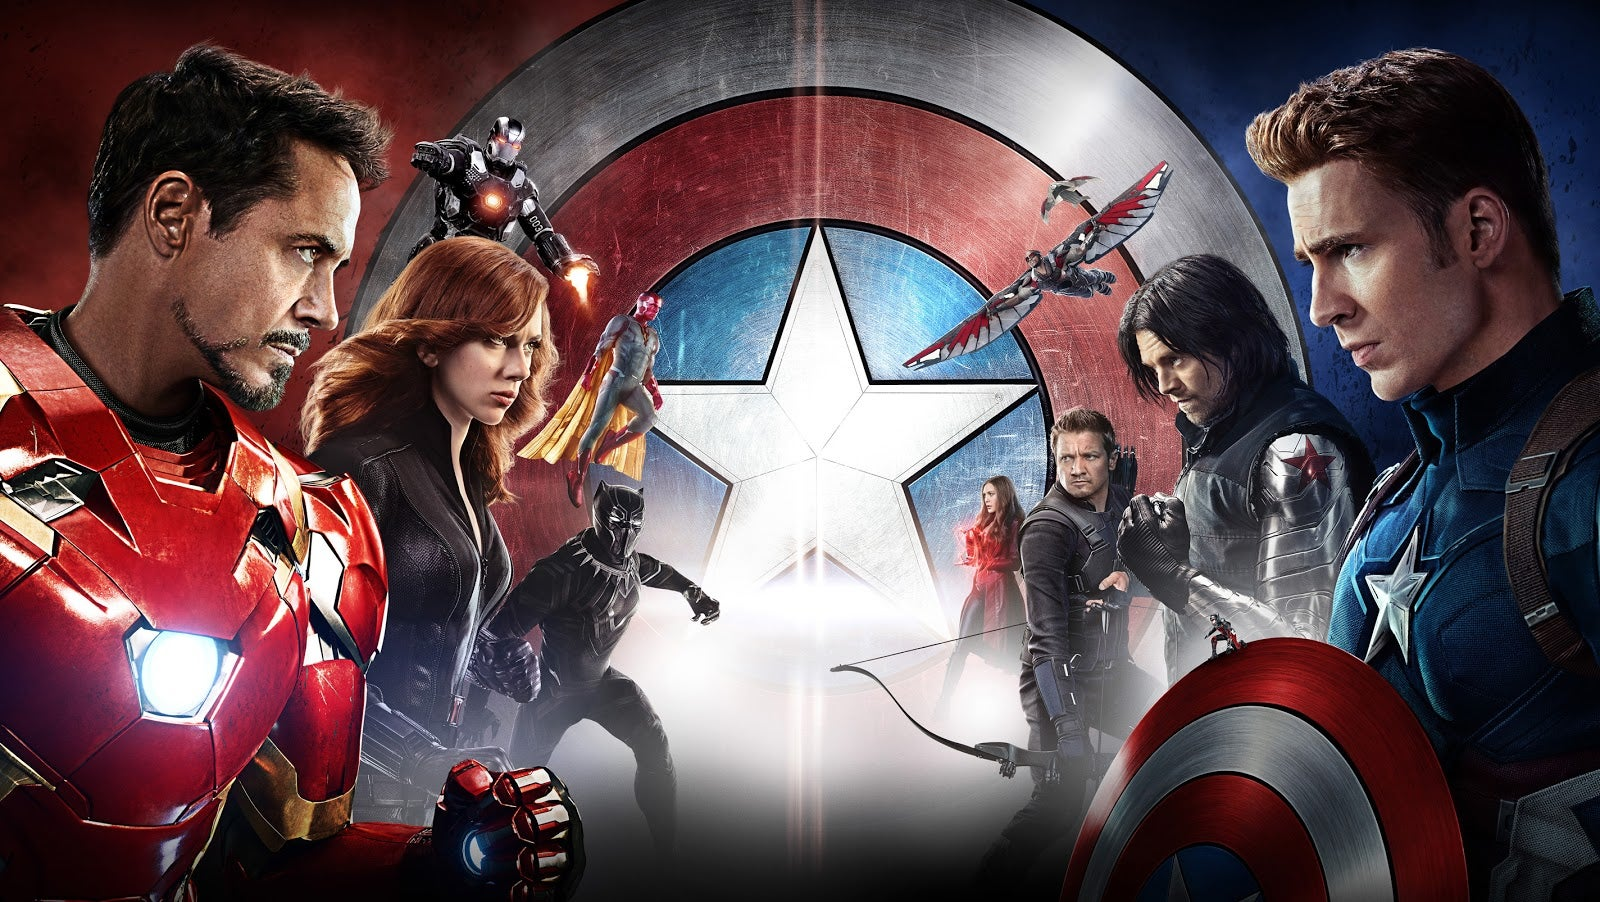 What We Liked and Loved About Captain America: Civil War